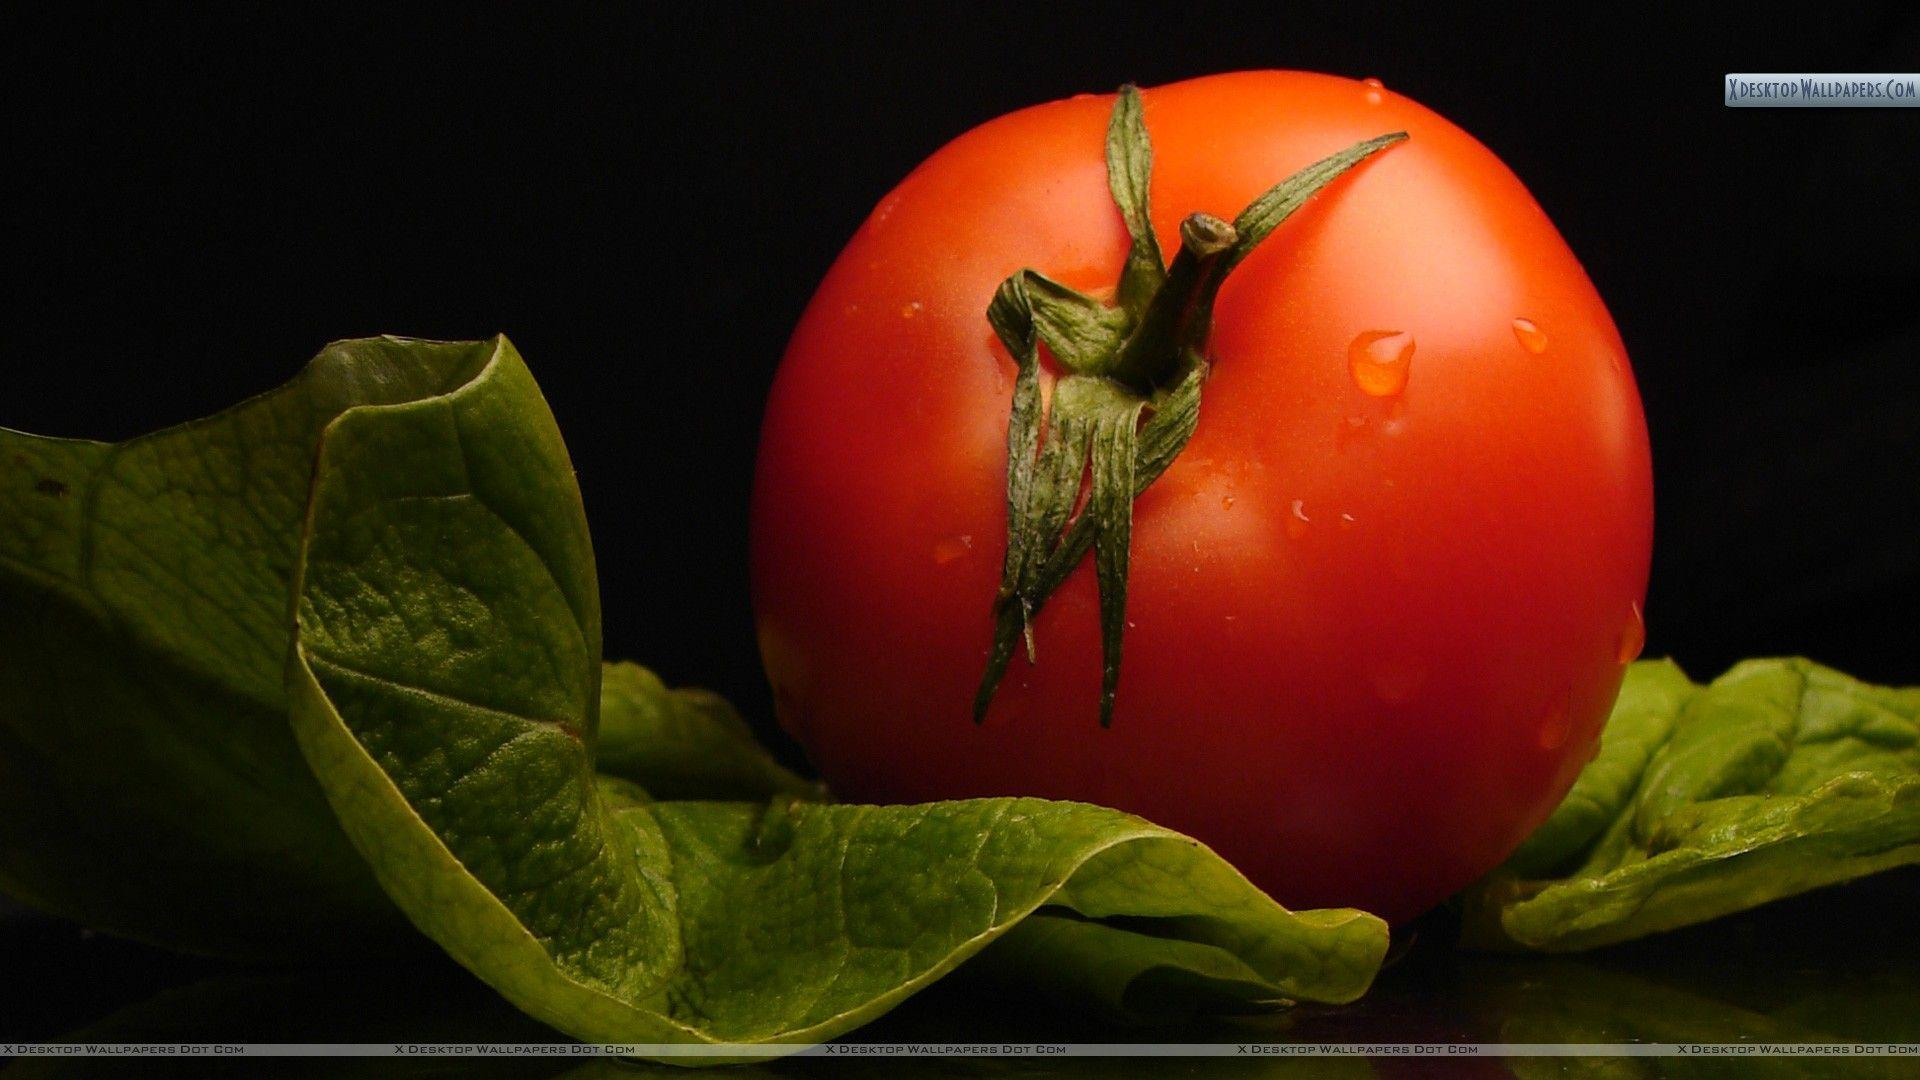 Tomato Wallpapers Group with 68 items